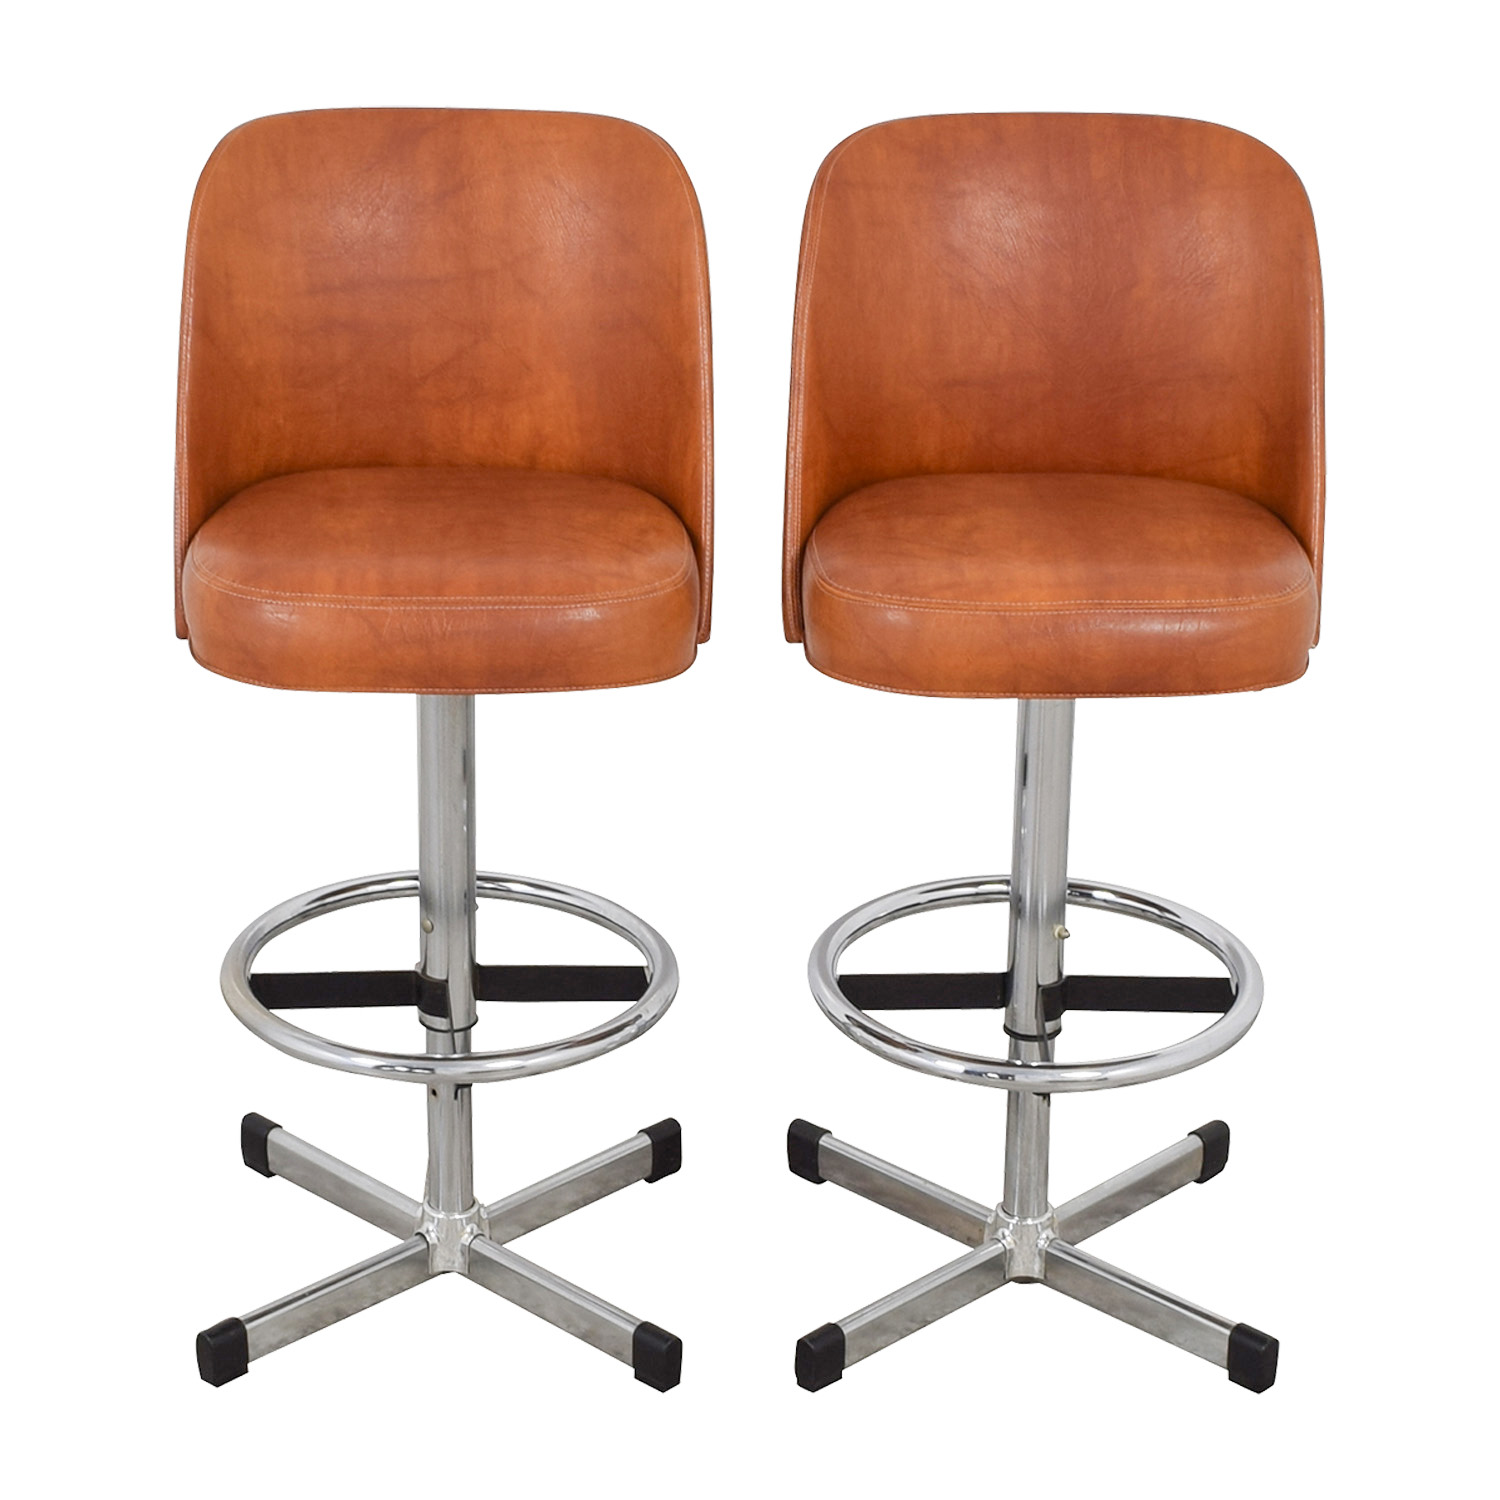 87% OFF   Samsonite Samsonite Vintage Orange Leather Bar Stools / Chairs